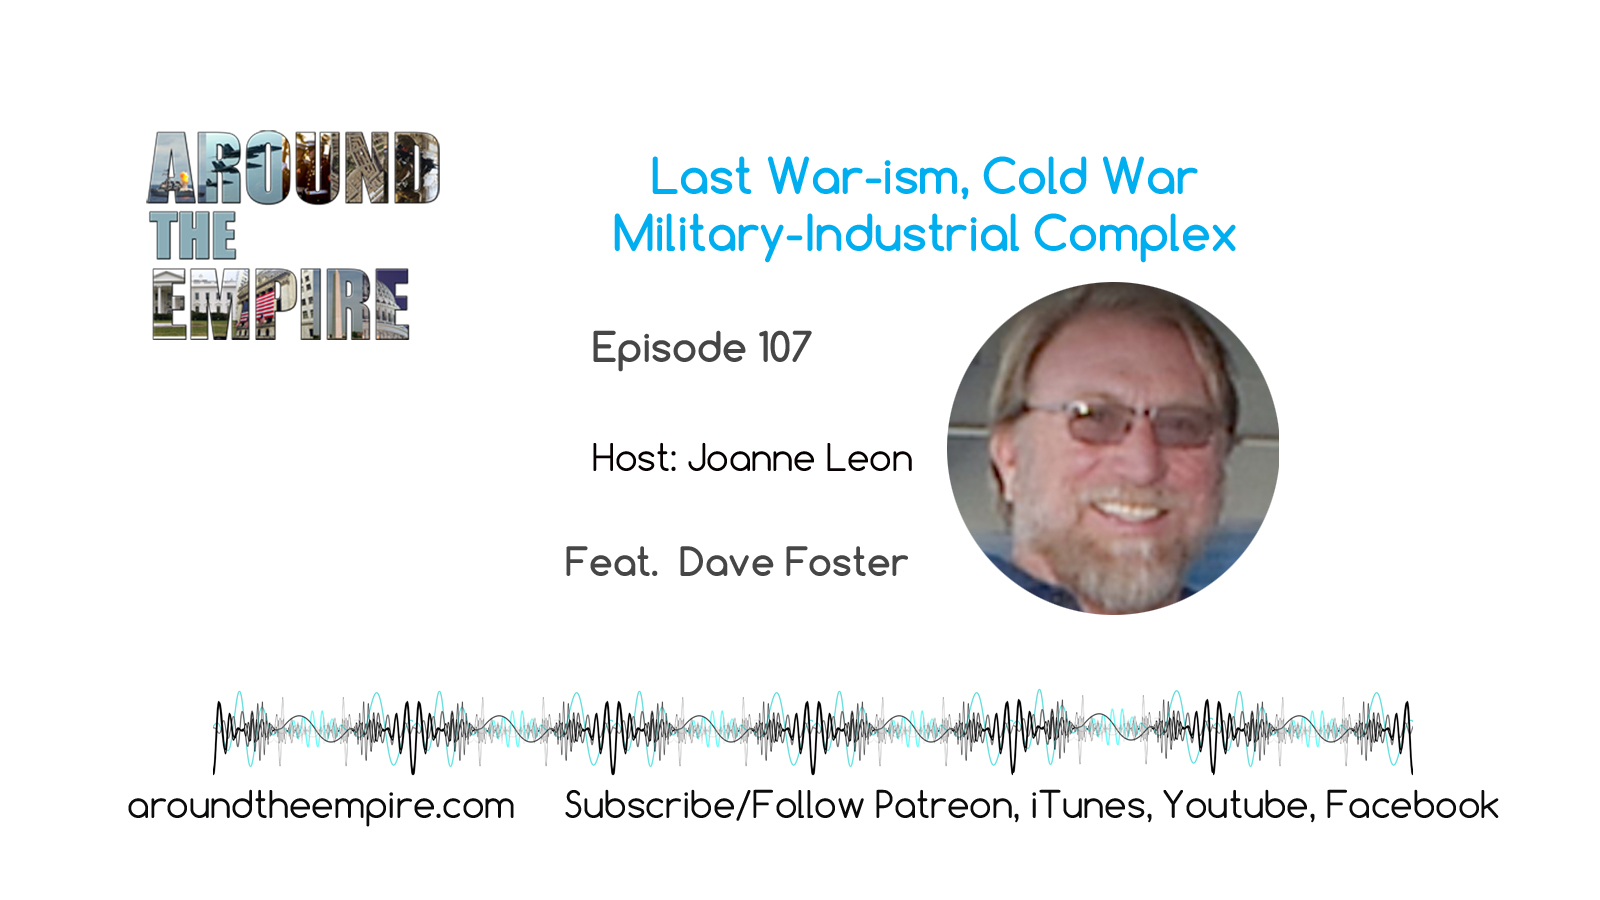 Ep 107 Last War-ism Cold War MIC feat Dave Foster